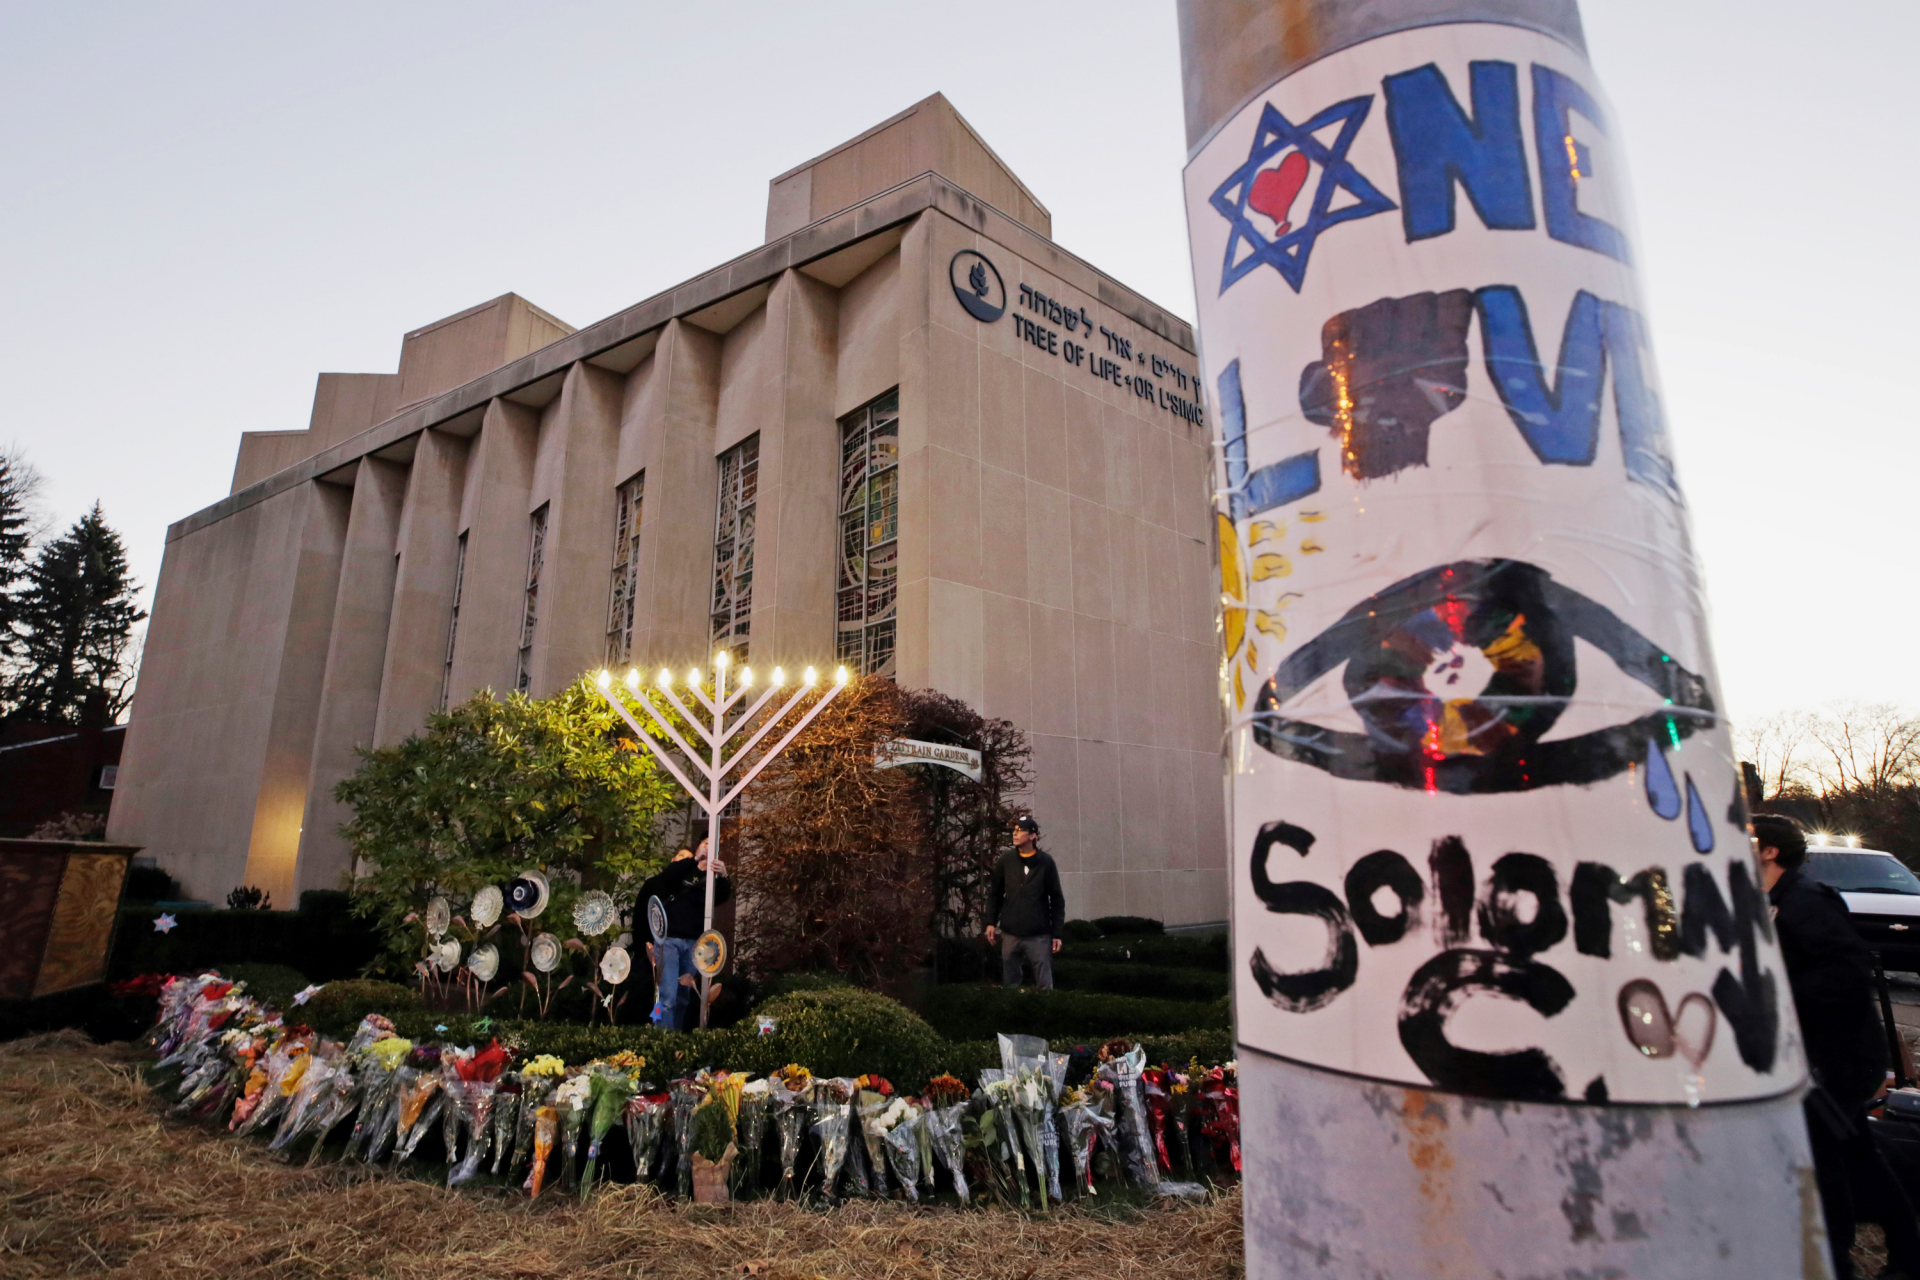 Pittsburgh paper donates Pulitzer prize money to Tree of Life synagogue